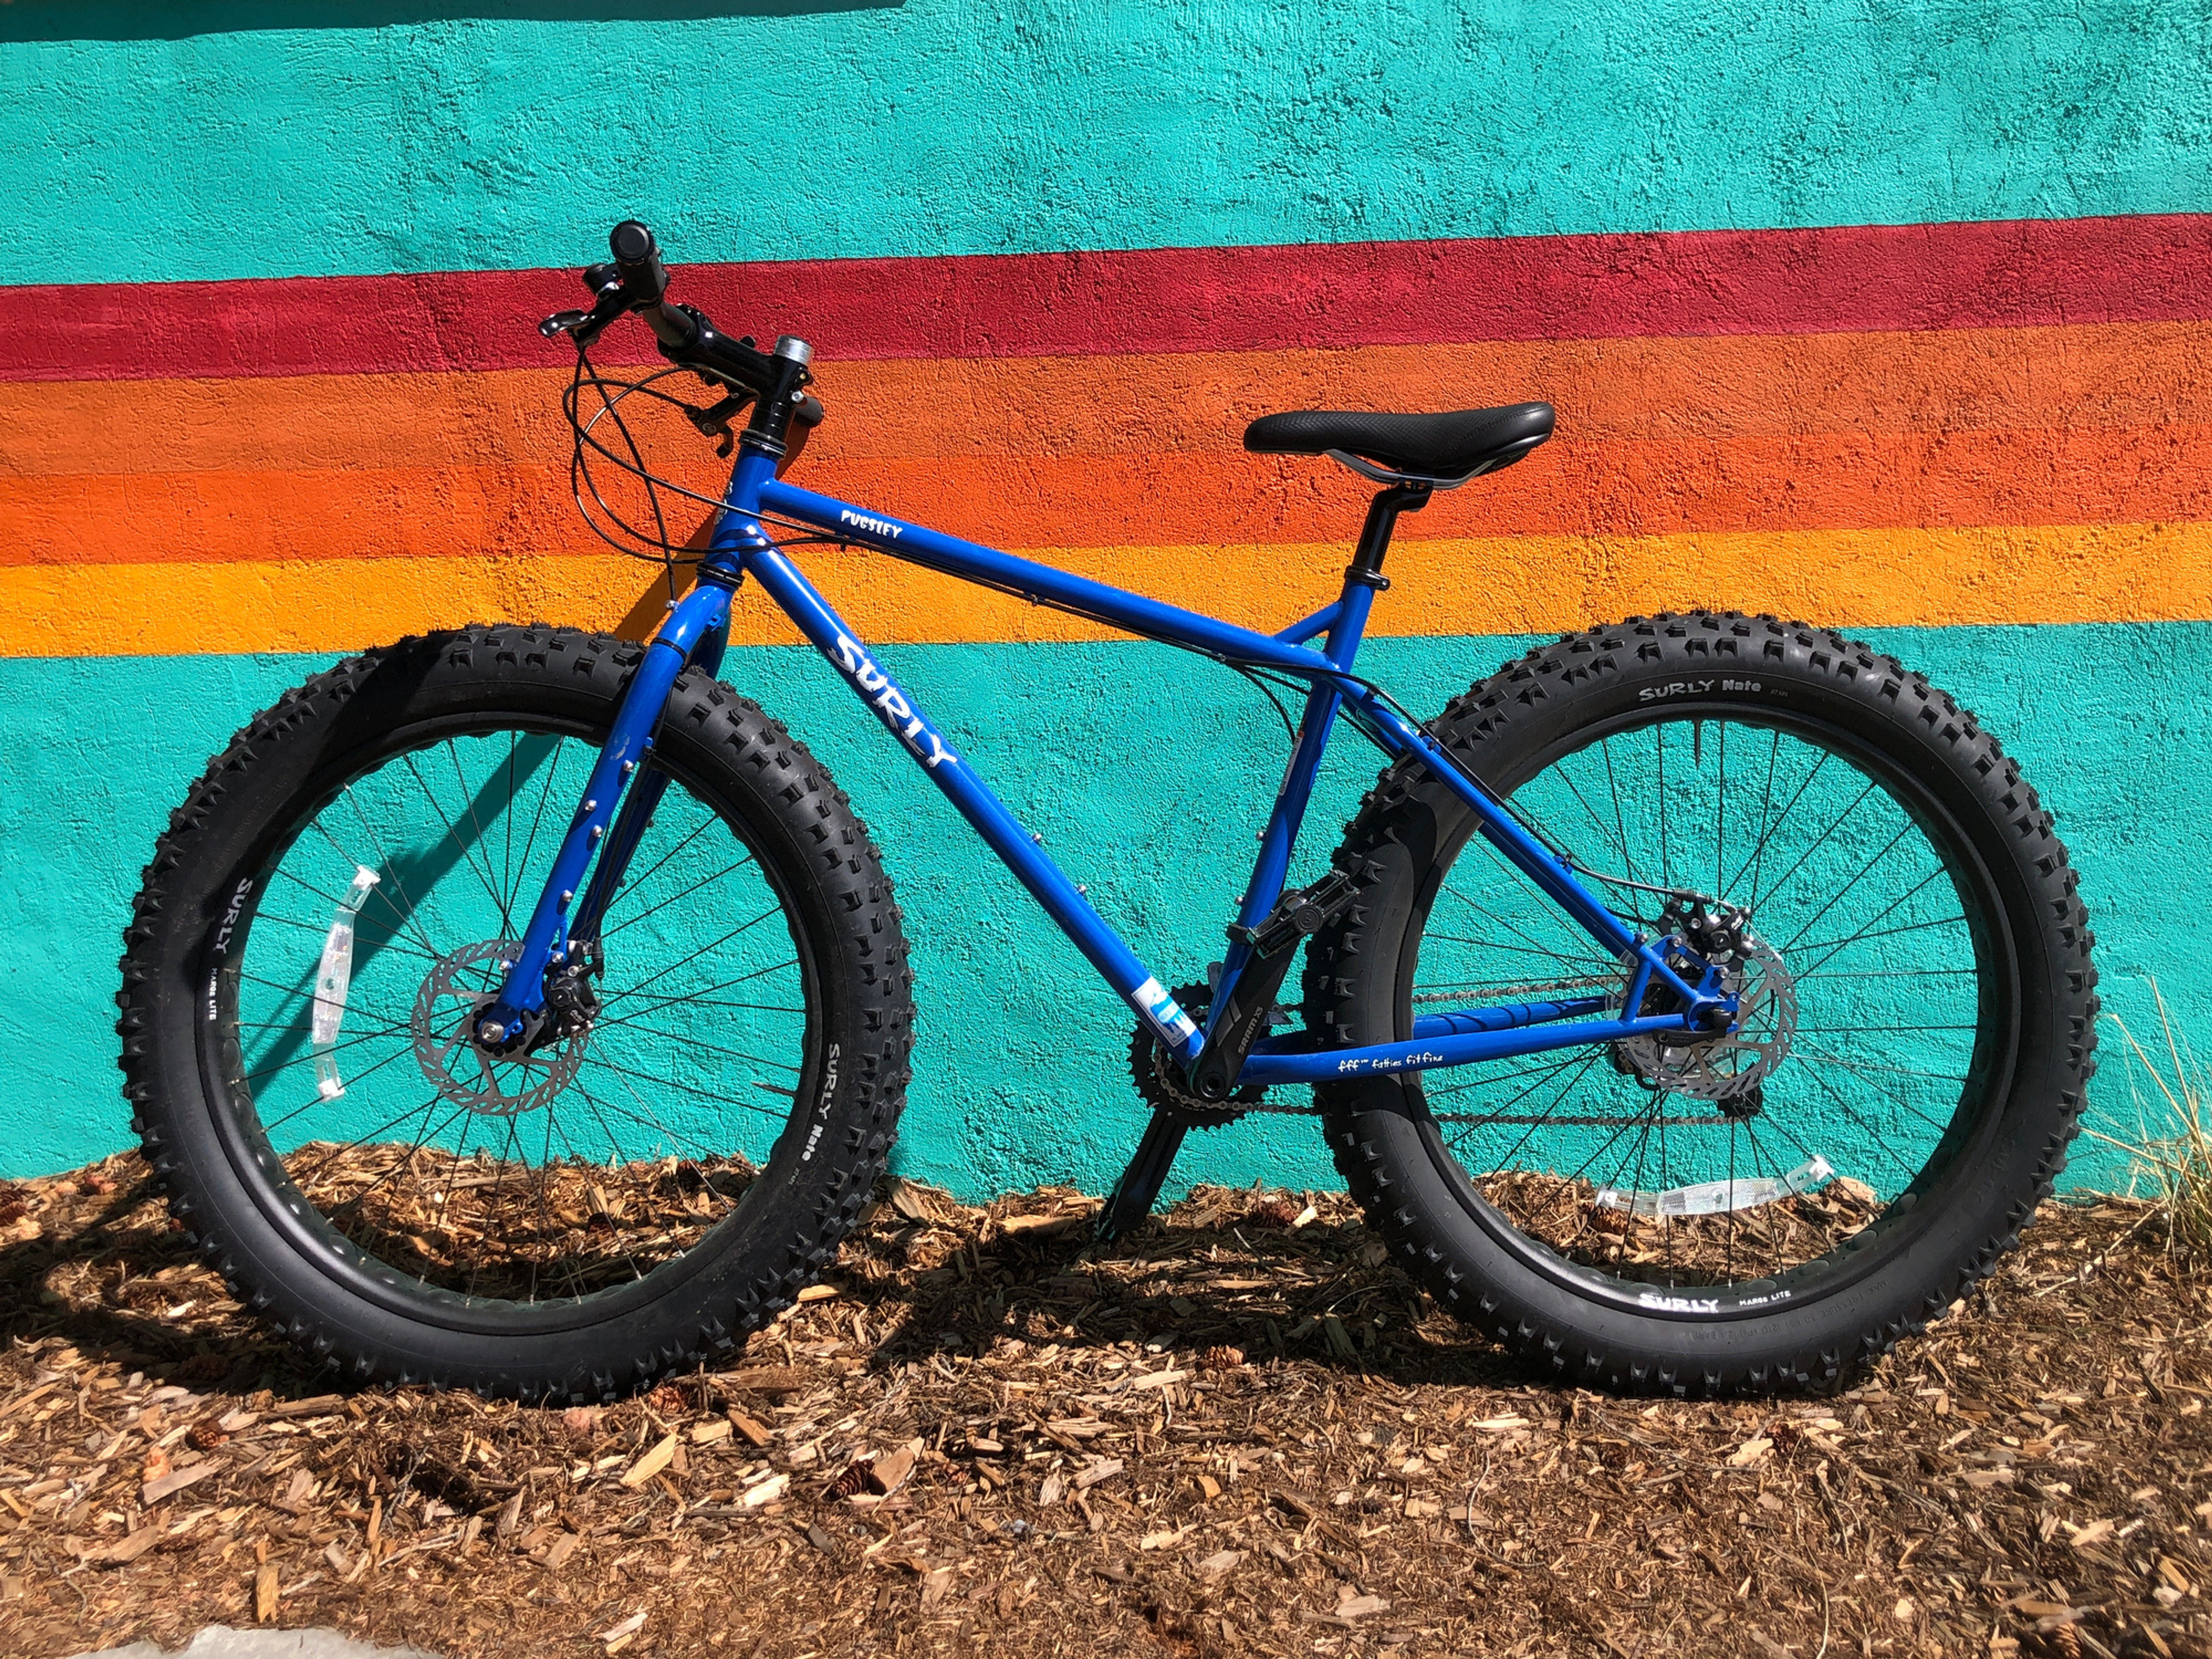 1 Hour on Blue Pugsley Surly Fatbike